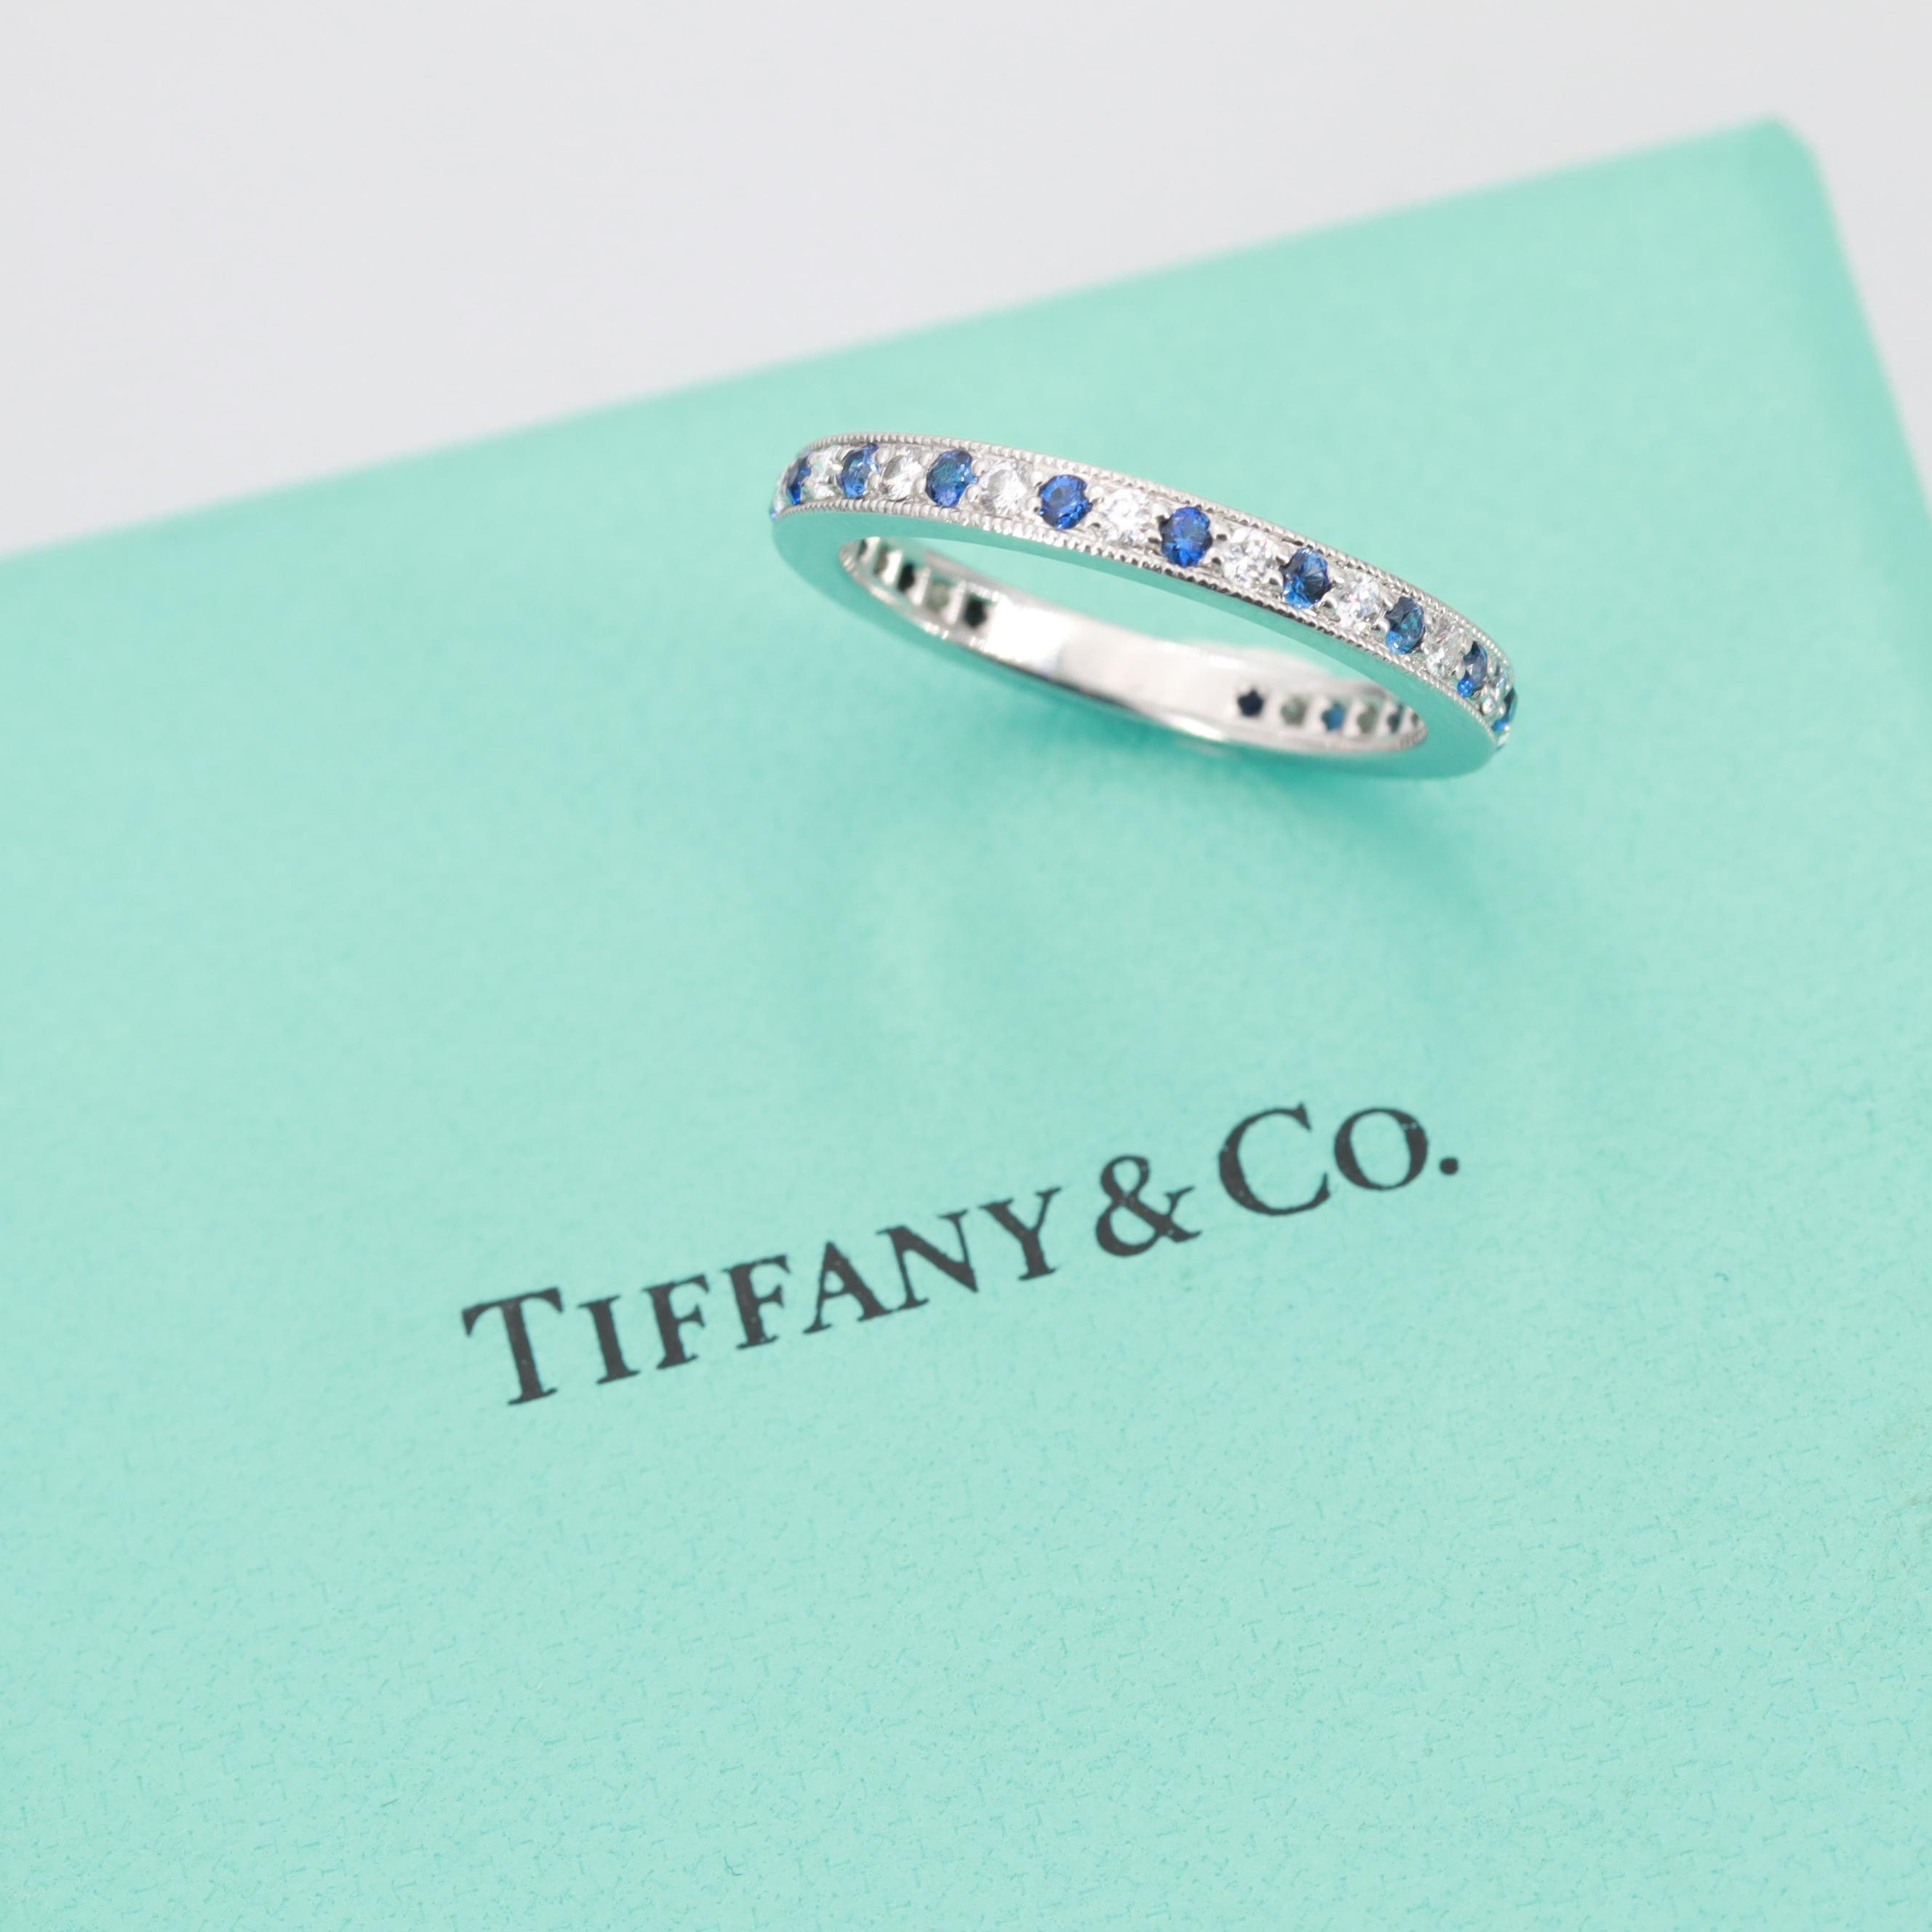 Tiffany & Co. Platinum Diamond and Sapphire Eternity Band